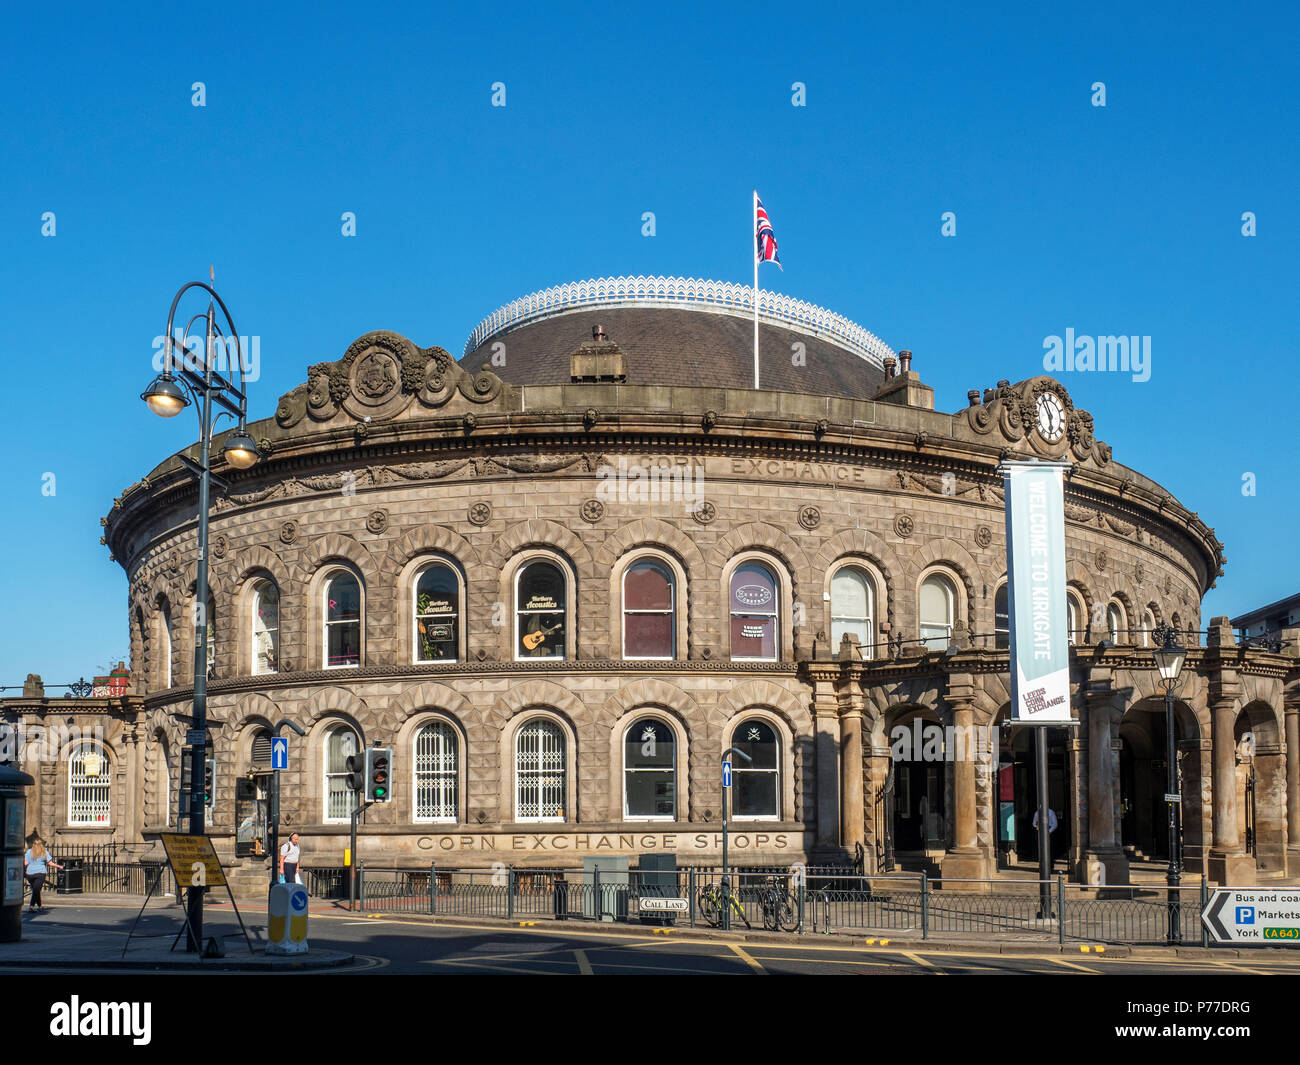 Victorian Corn Exchange building converted to shopping units in Leeds West Yorkshire England - Stock Image